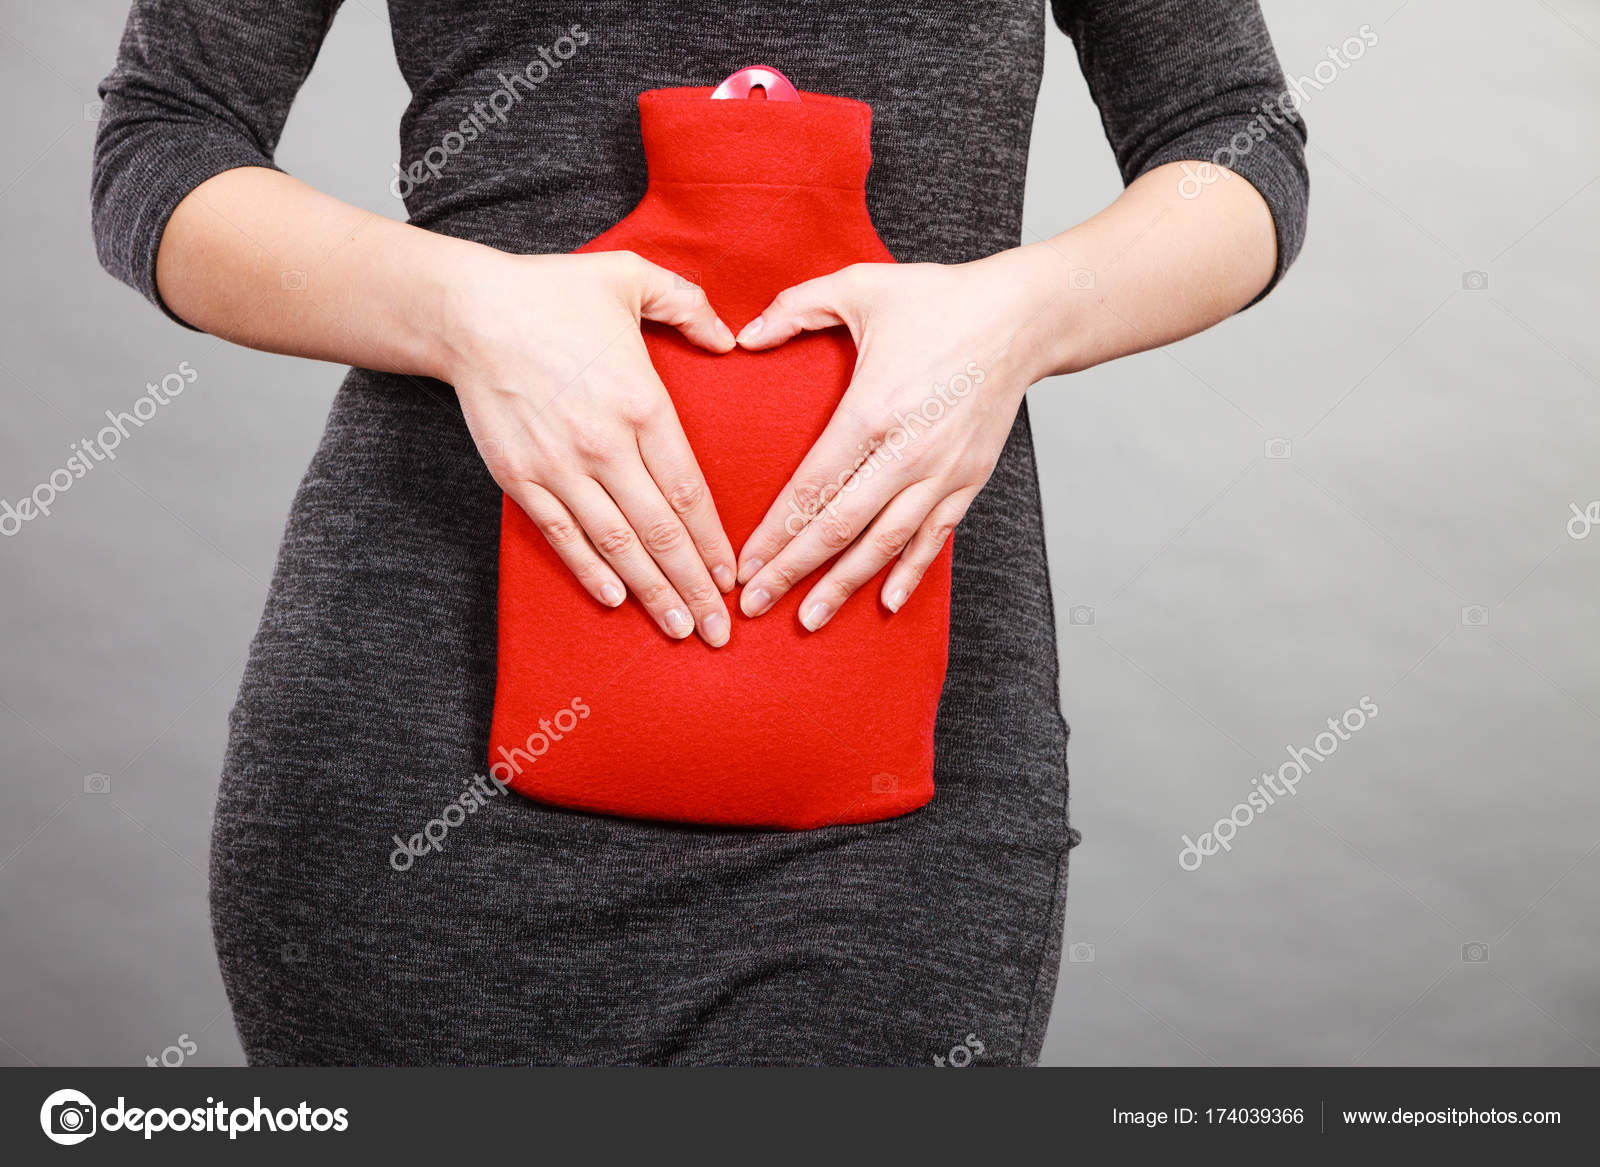 Girl holds hot water bottle on belly making heart shape by